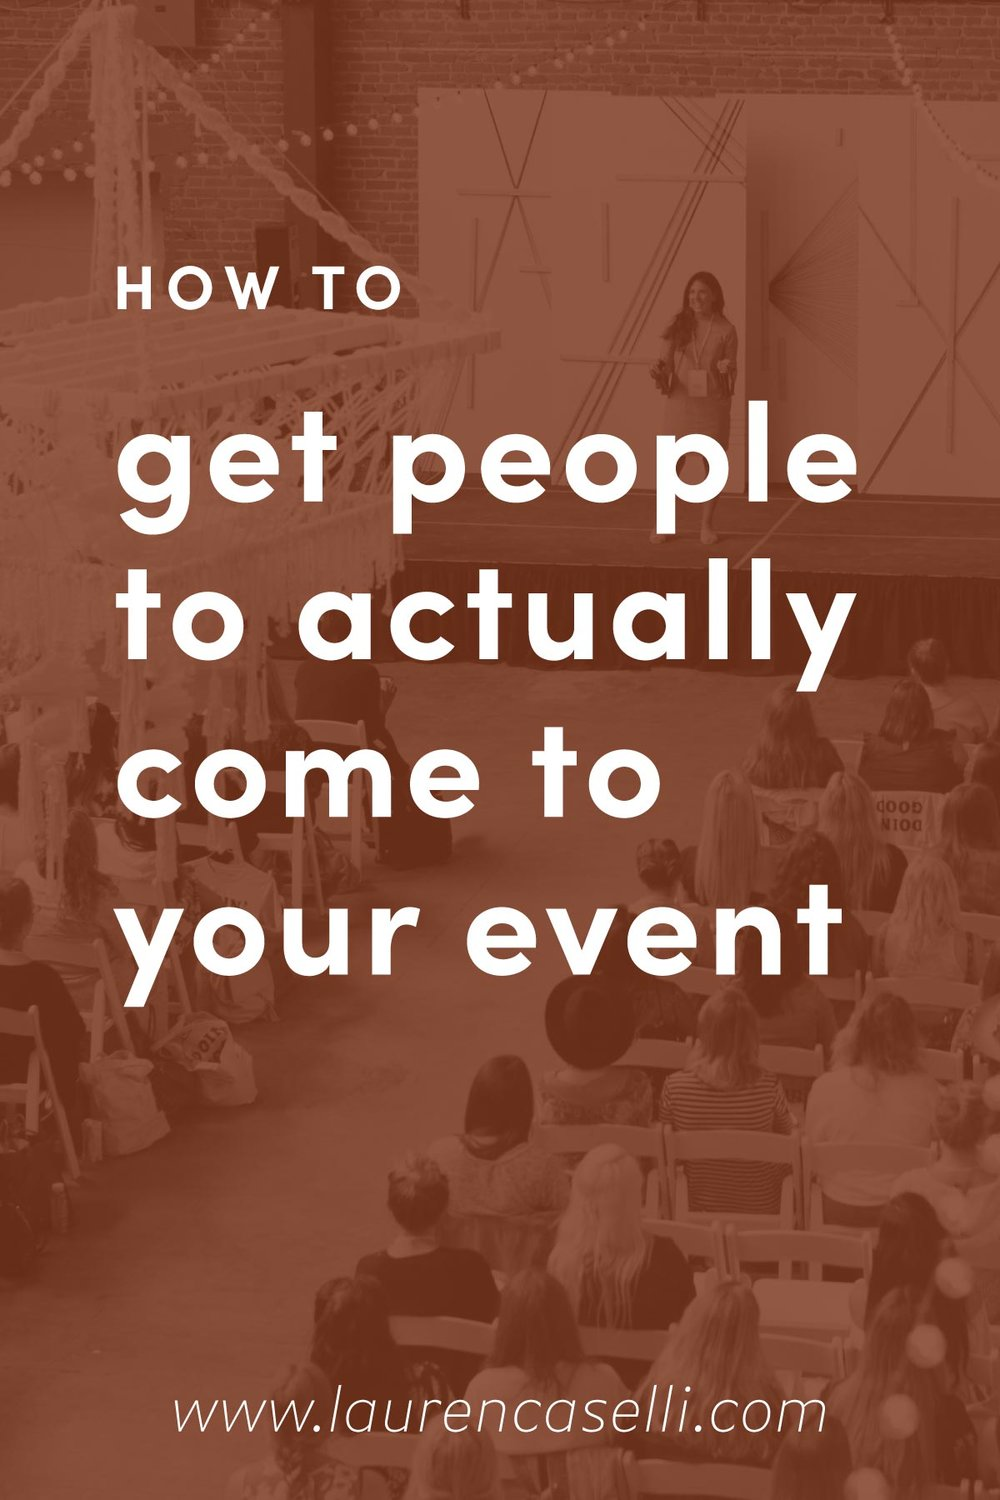 How to Get People to Come to Your Event.jpg